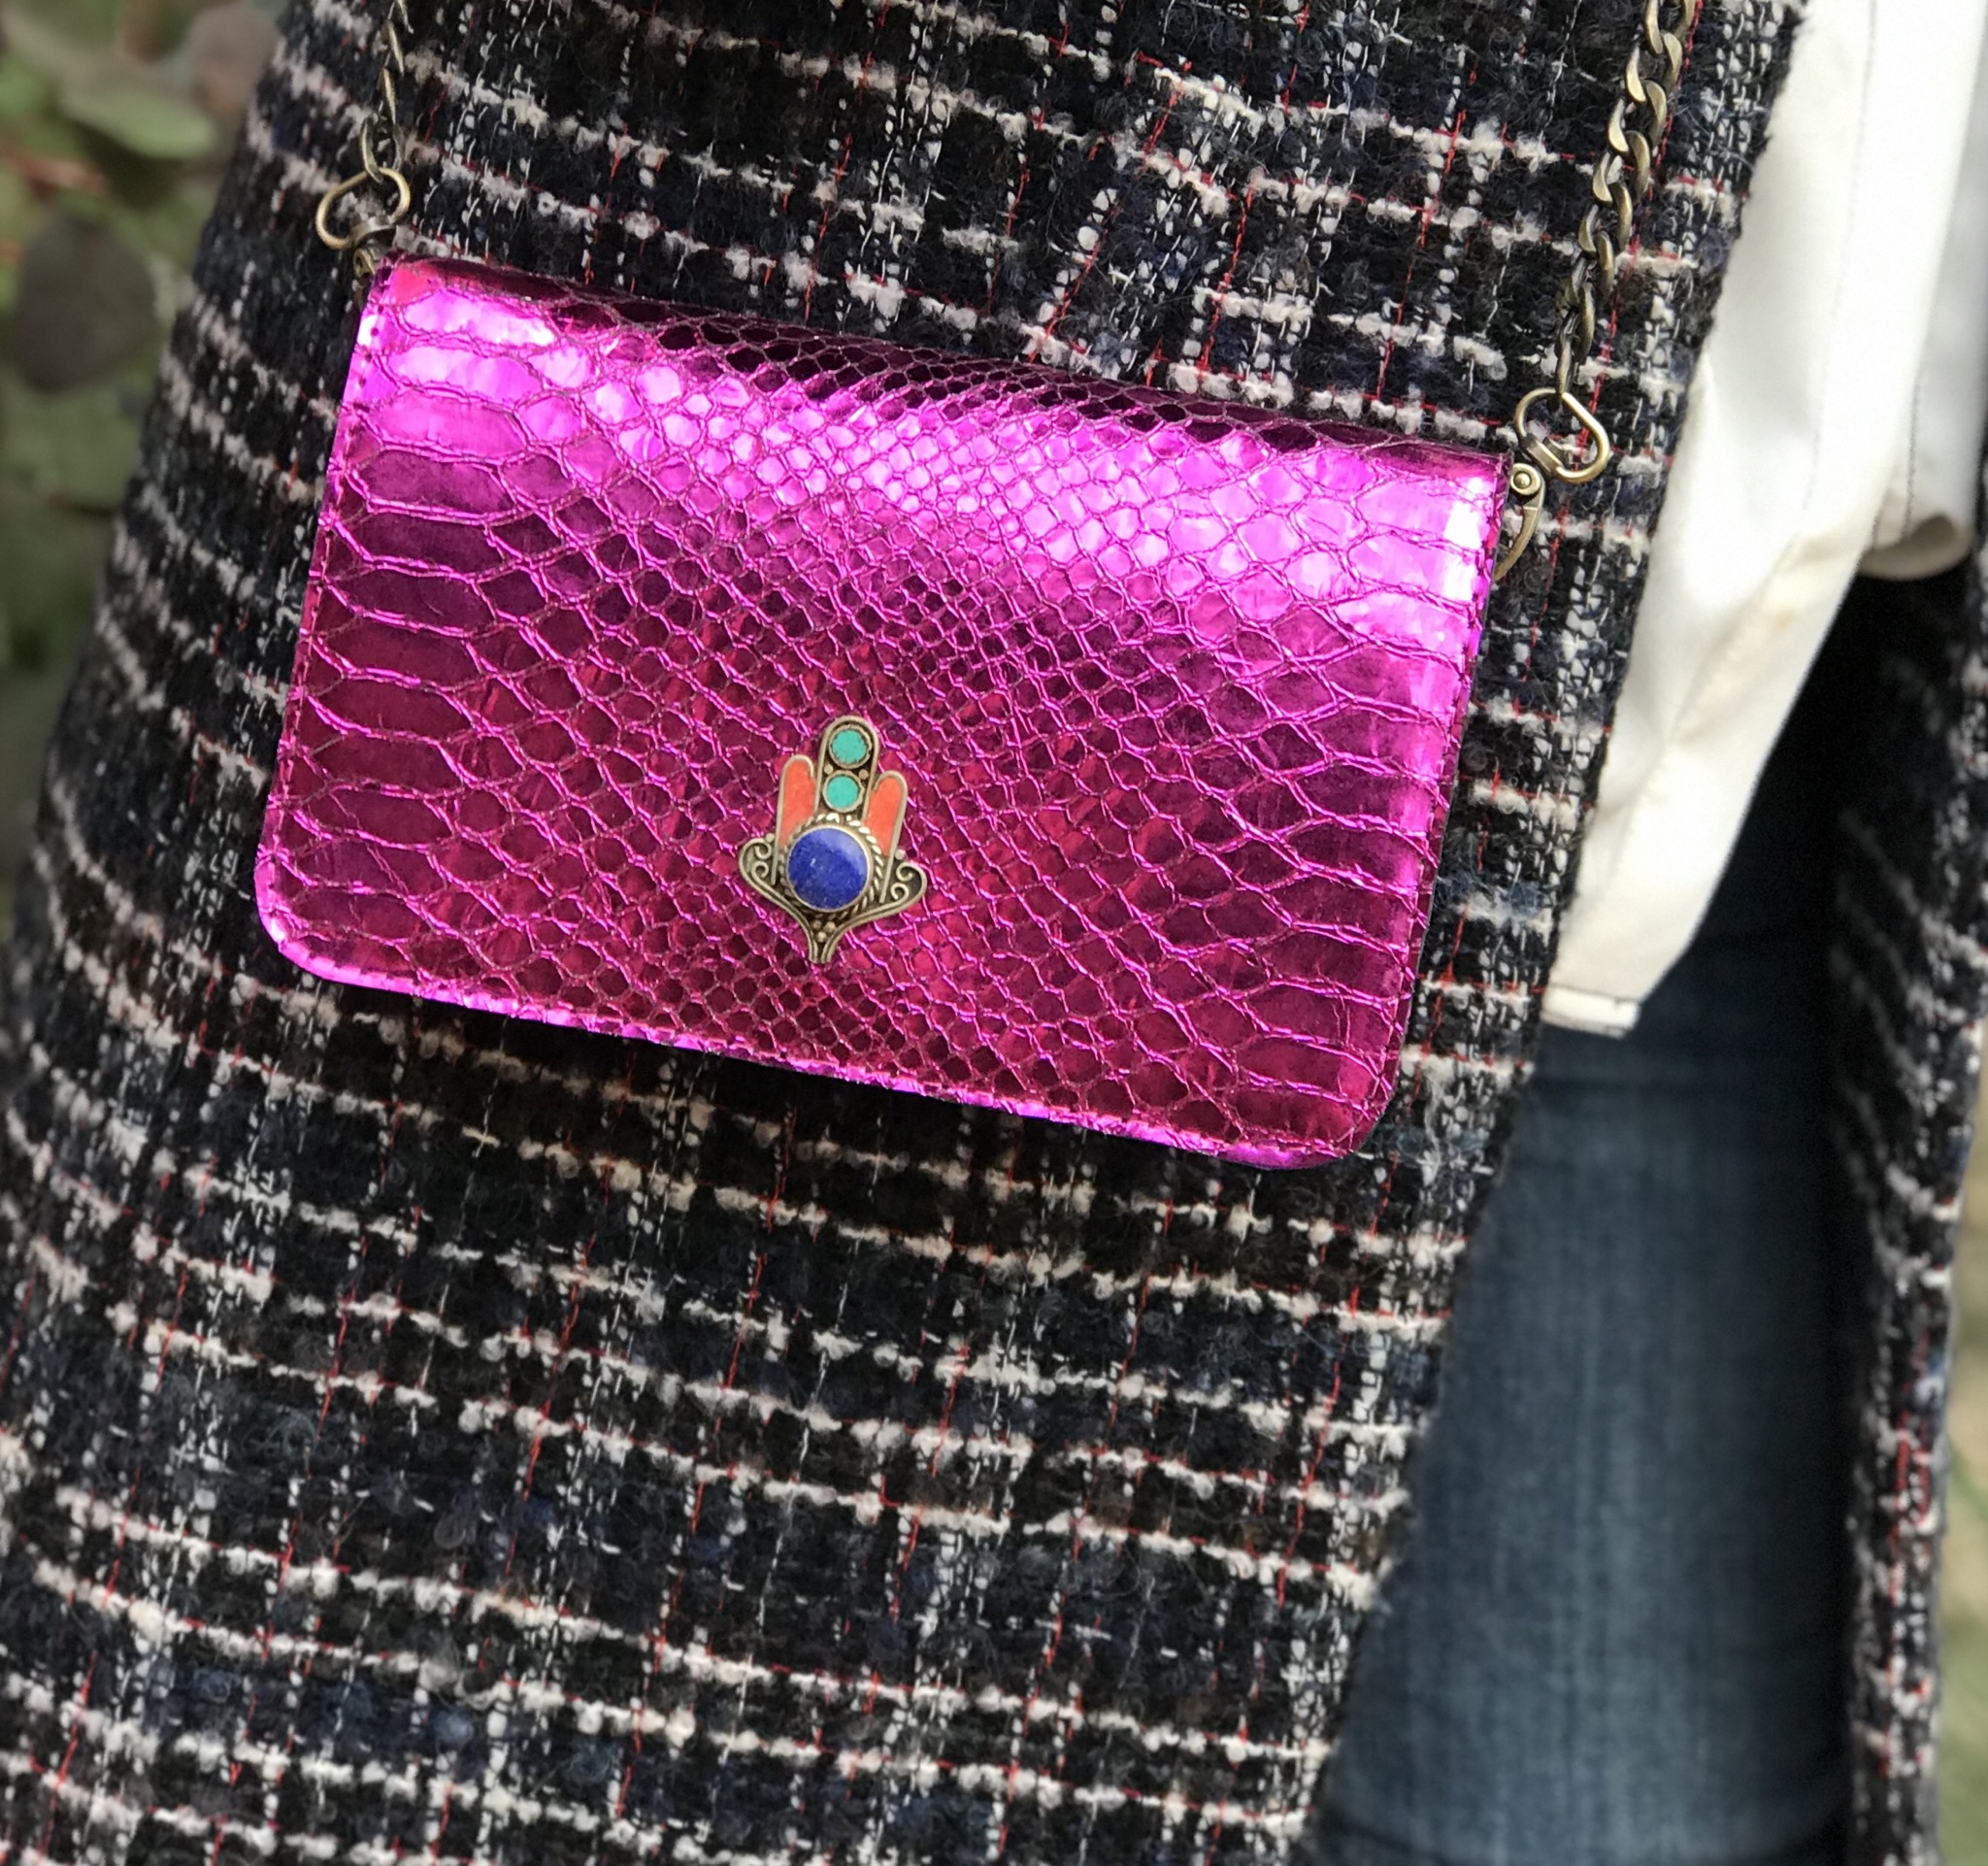 Bag mini leather croco pink fushia with khmissa